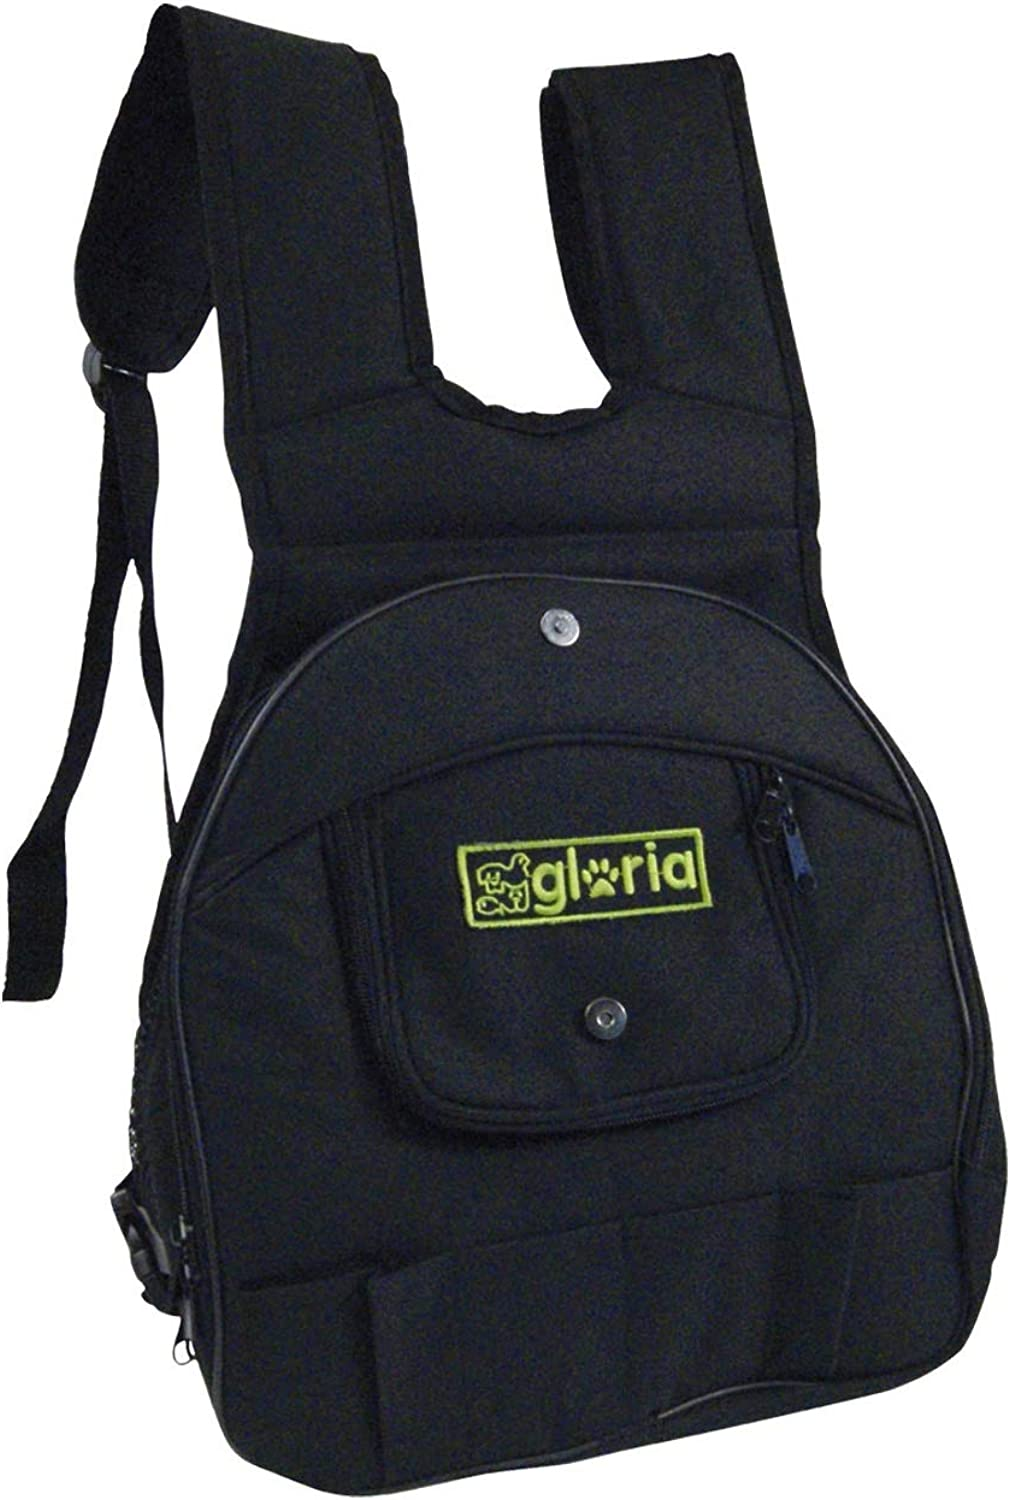 Gloria Canguro Expandable Pet Backpack (11.8 x 7.9 x 13.4in) (Black)